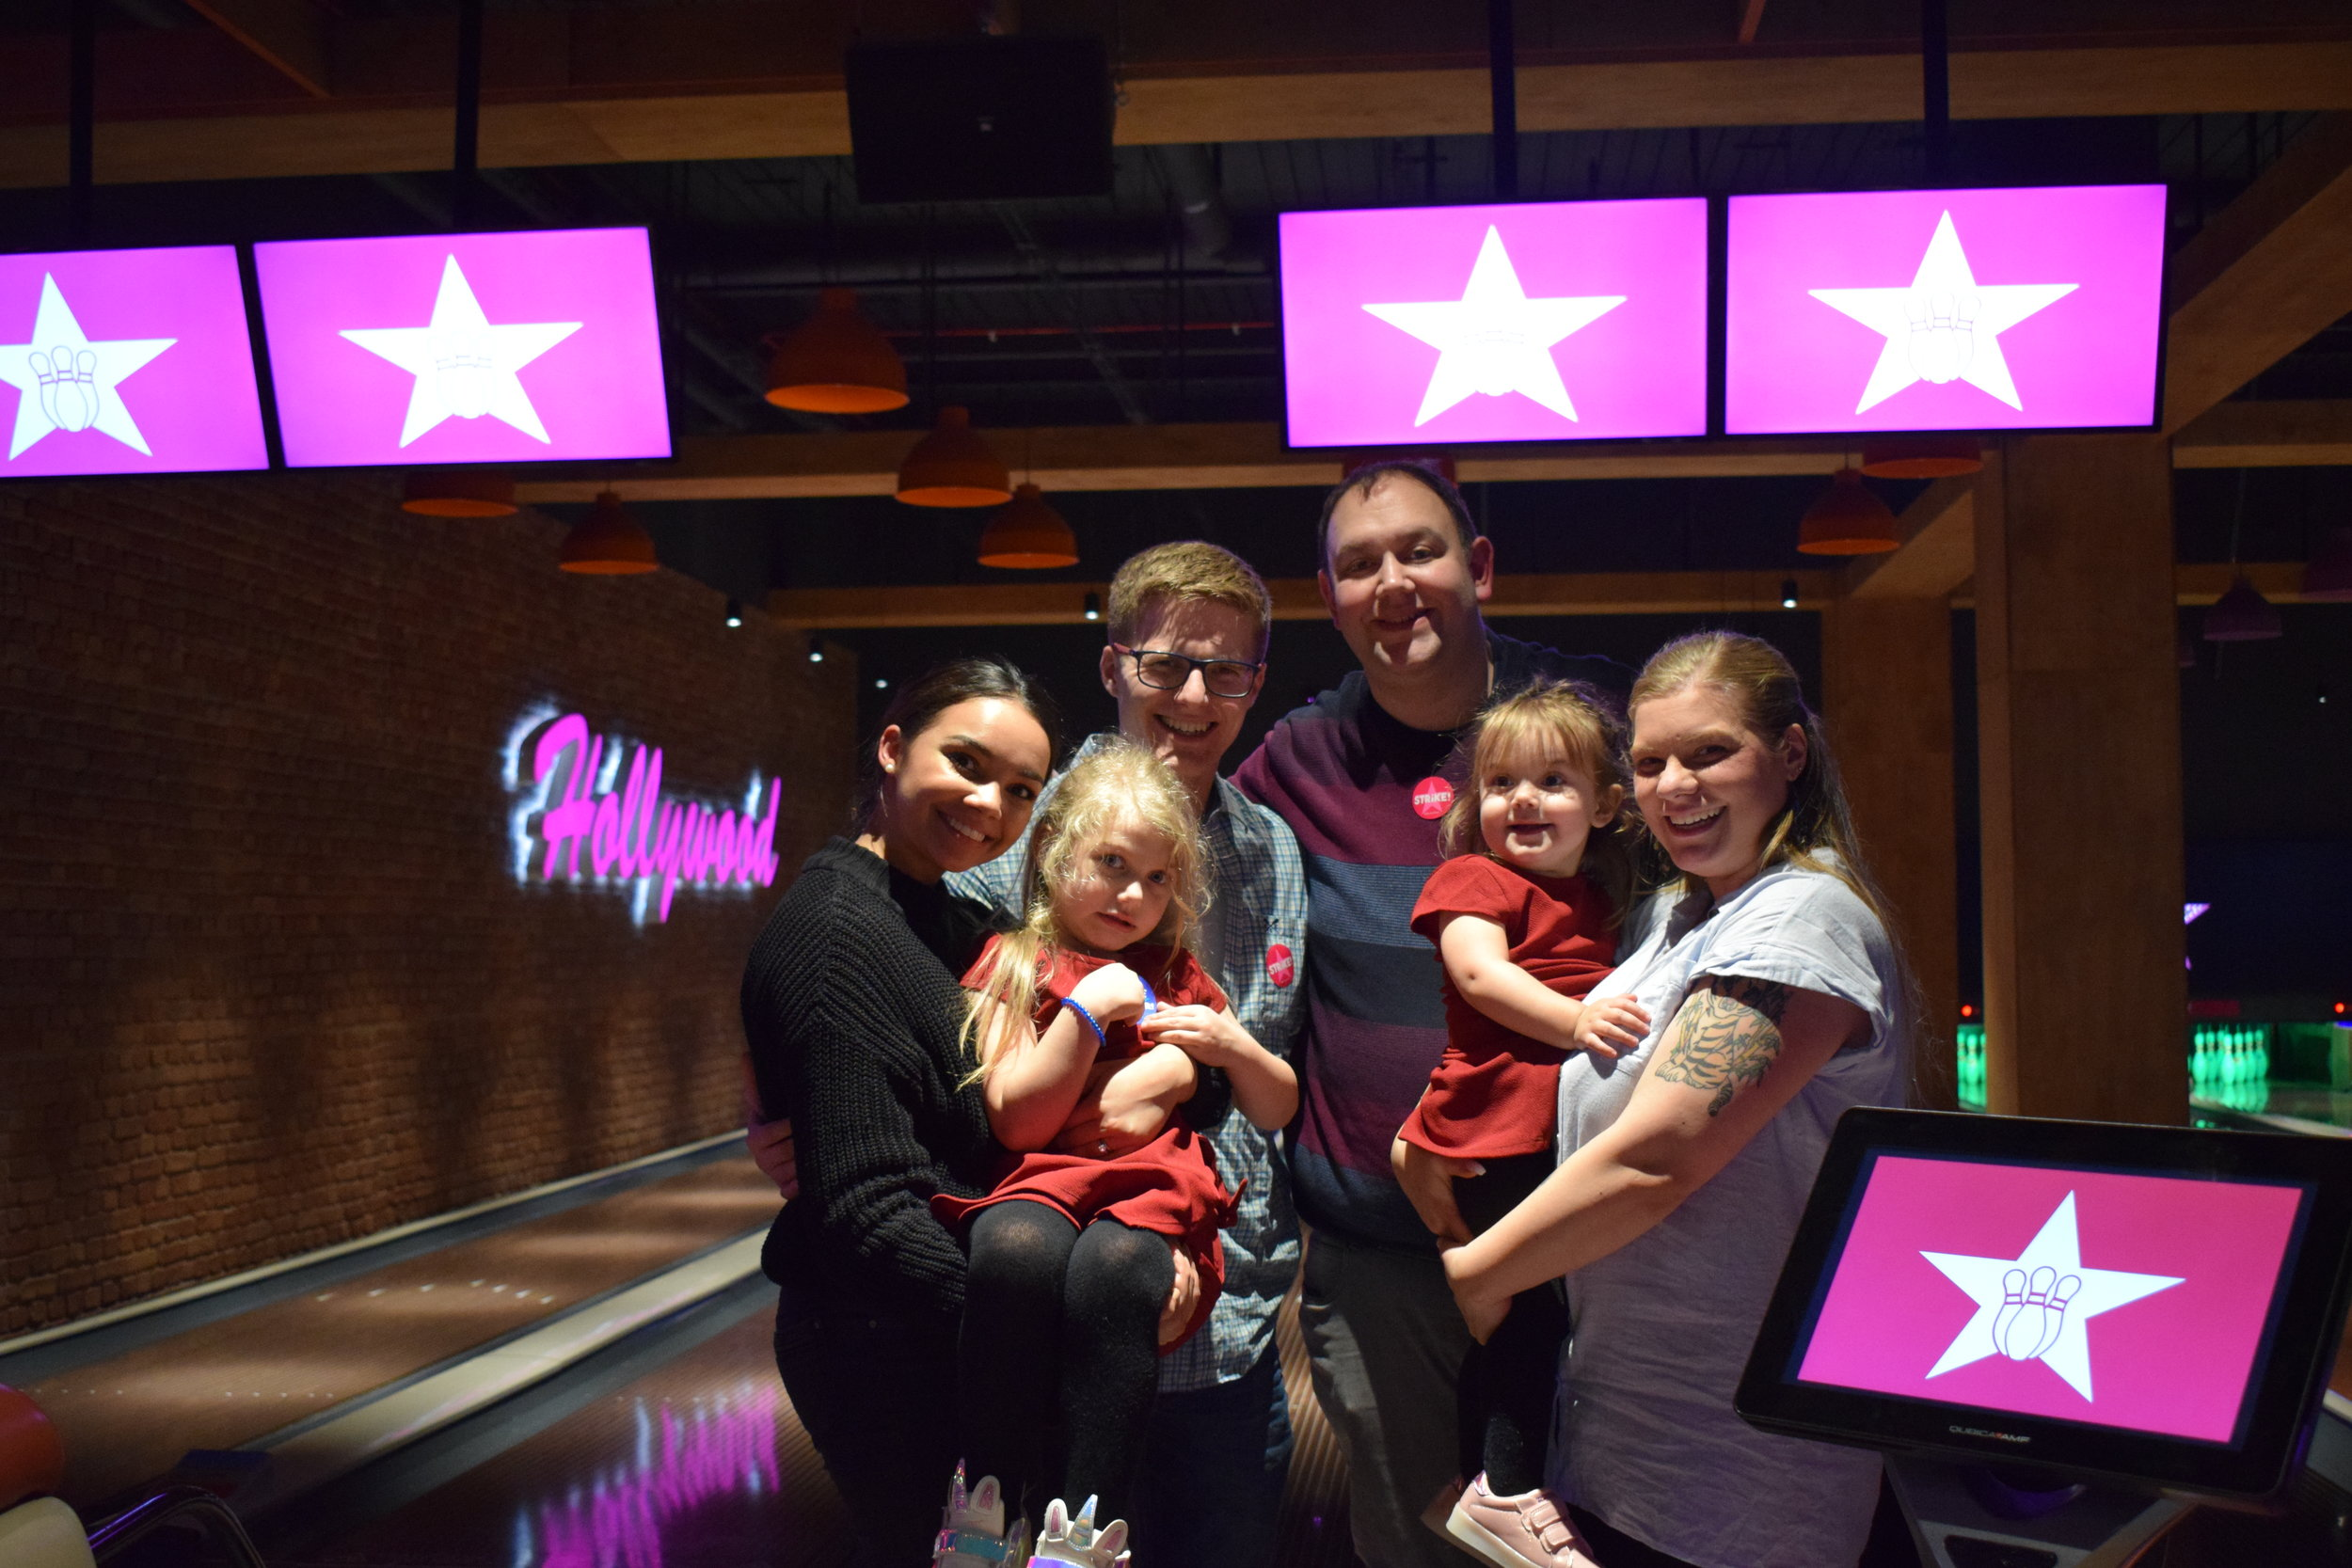 My family at Hollywood Bowl, Intu Watford